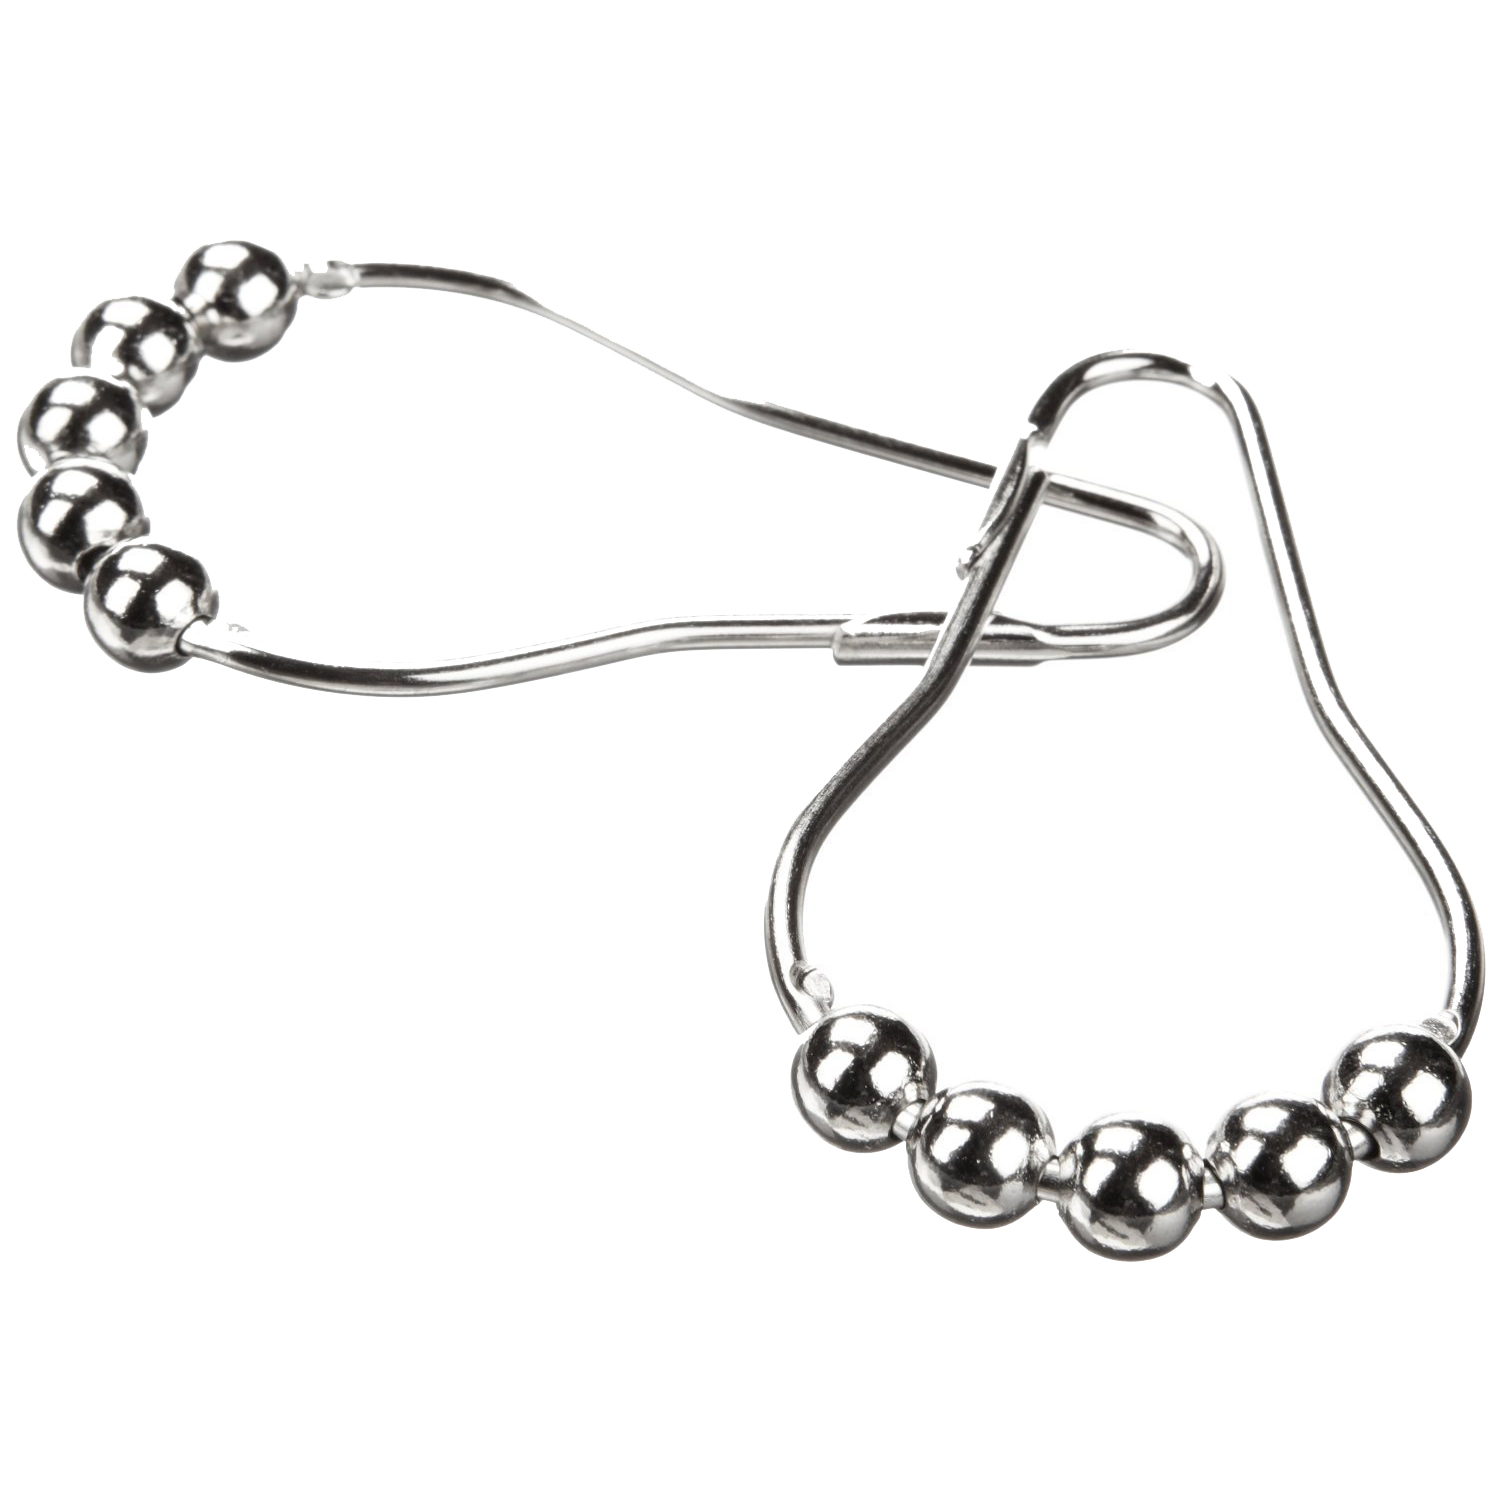 Polished Satin Nickel Ball Shower Curtain Rings 5 Roller Balls Hooks Set Of 36 Heavy Duty In Decorative Accessories From Home Garden